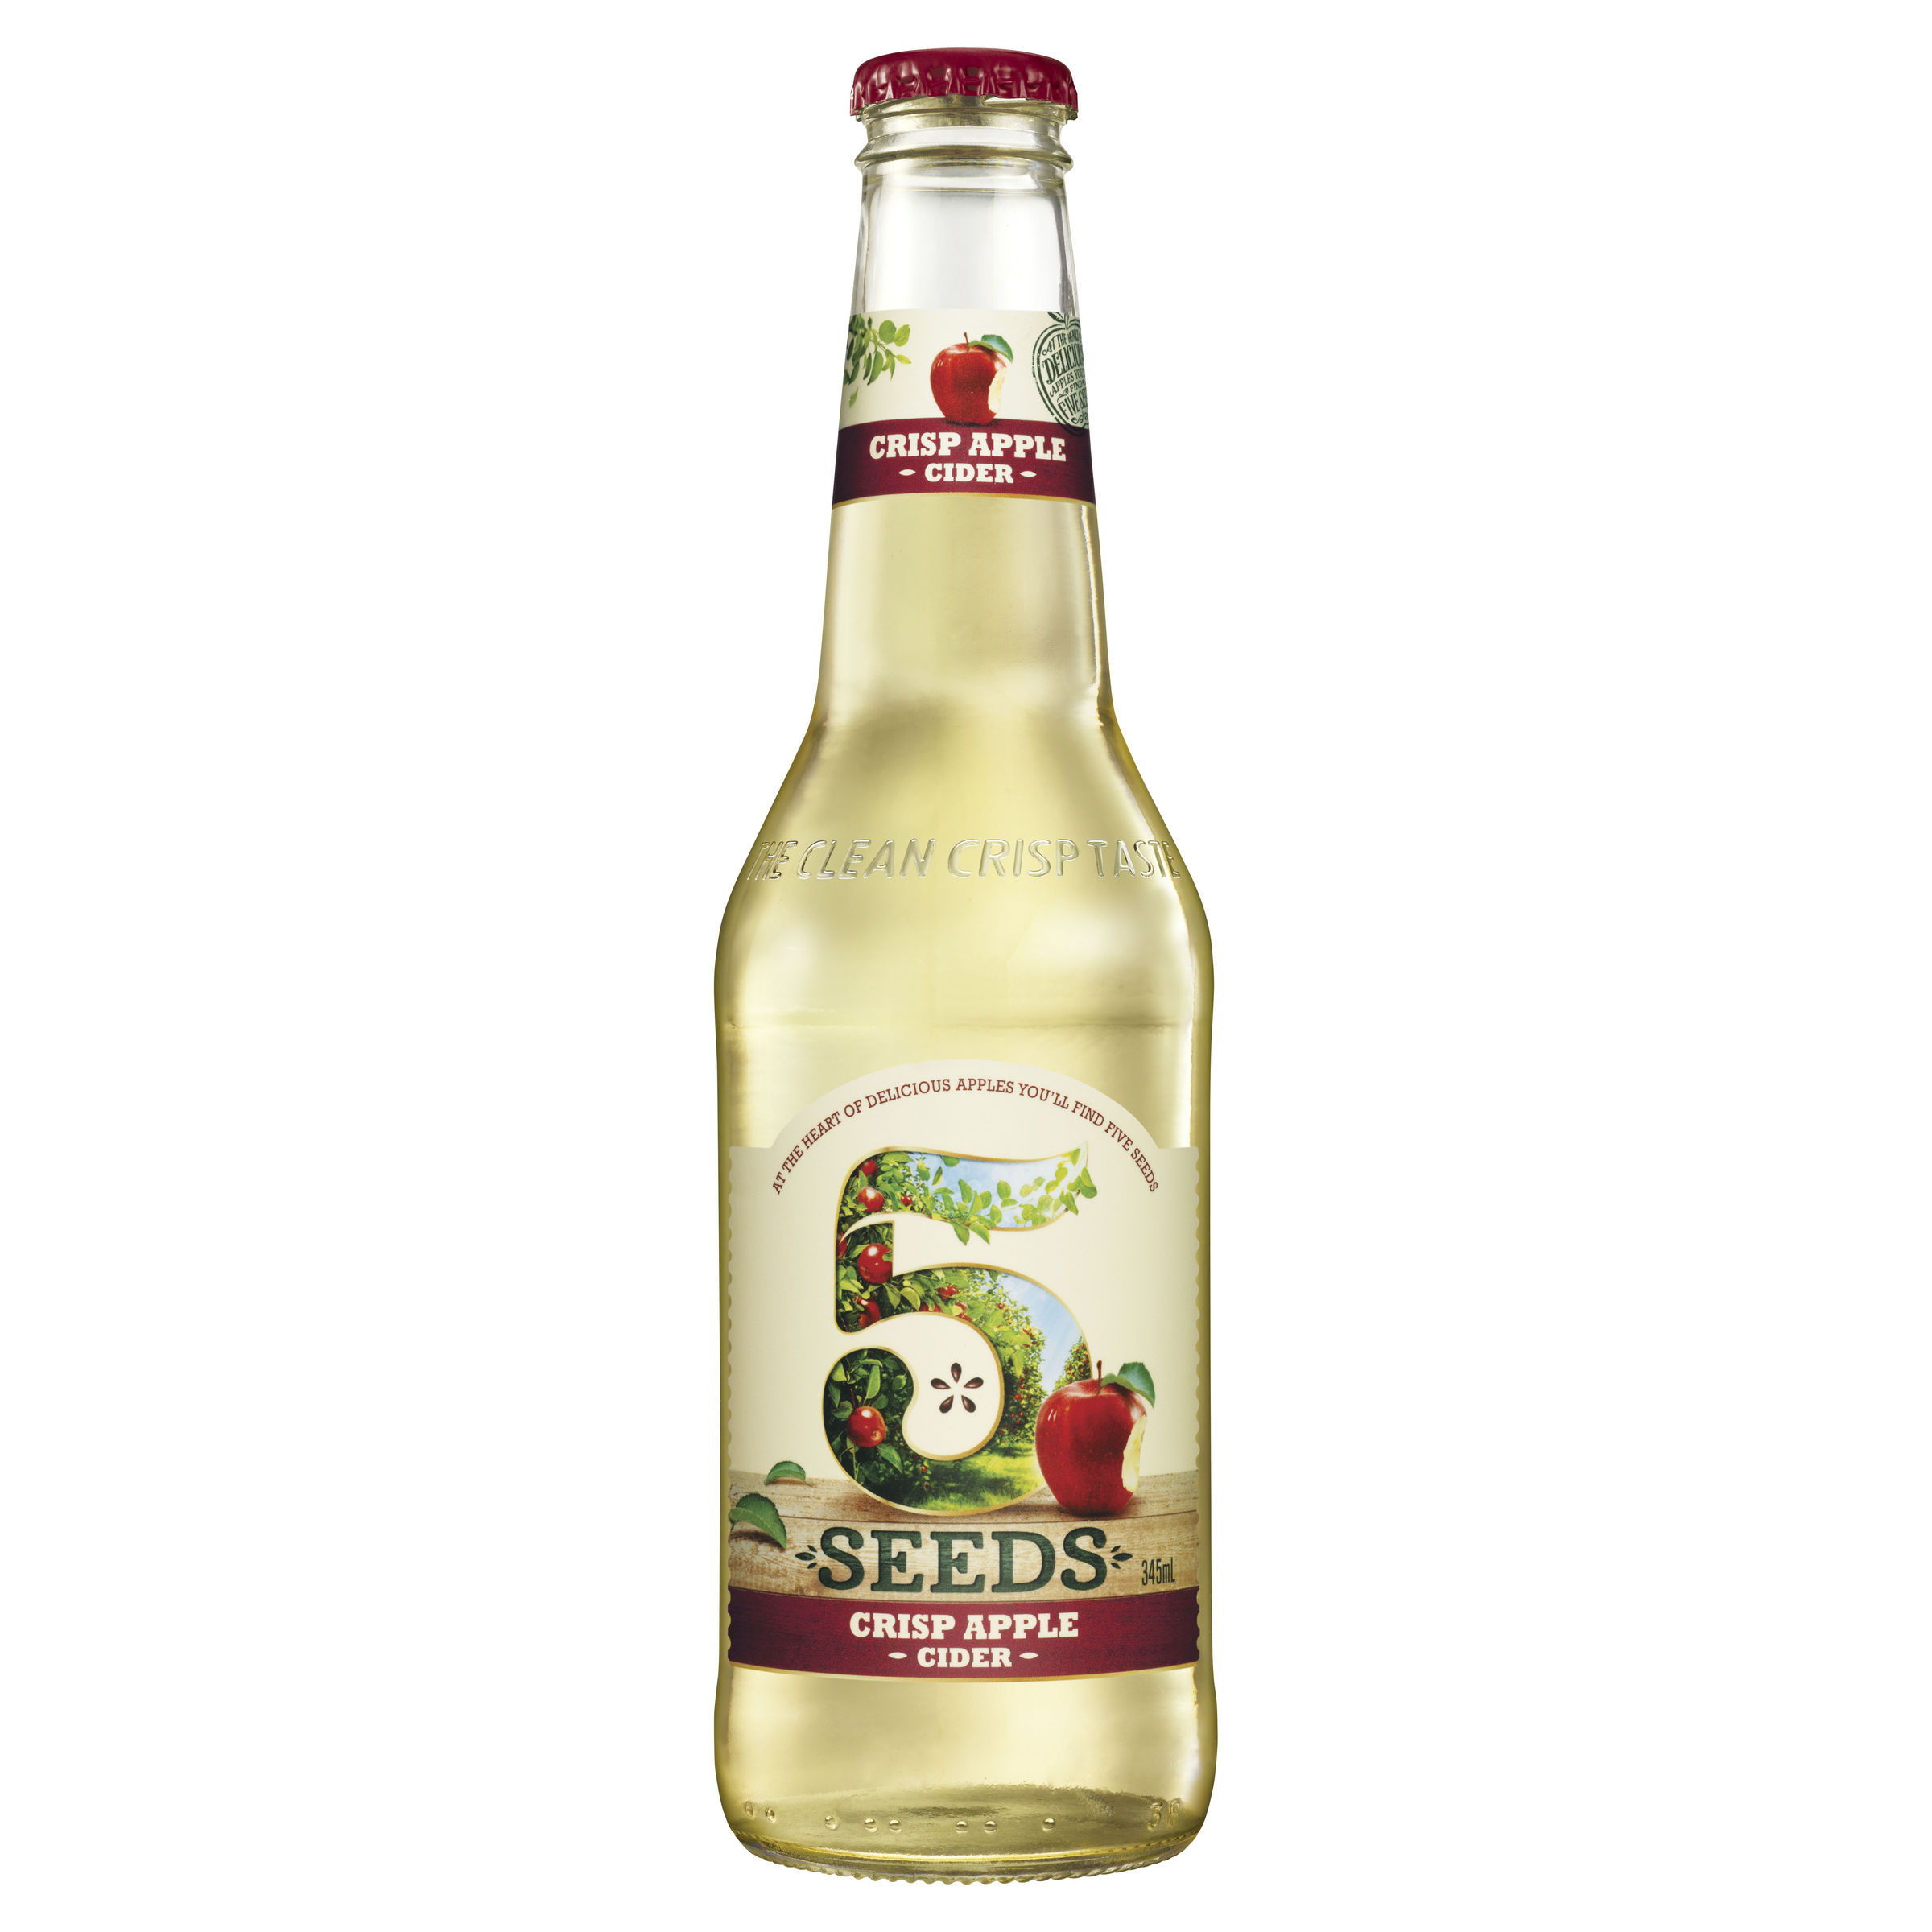 TED 5 SEEDS CIDER